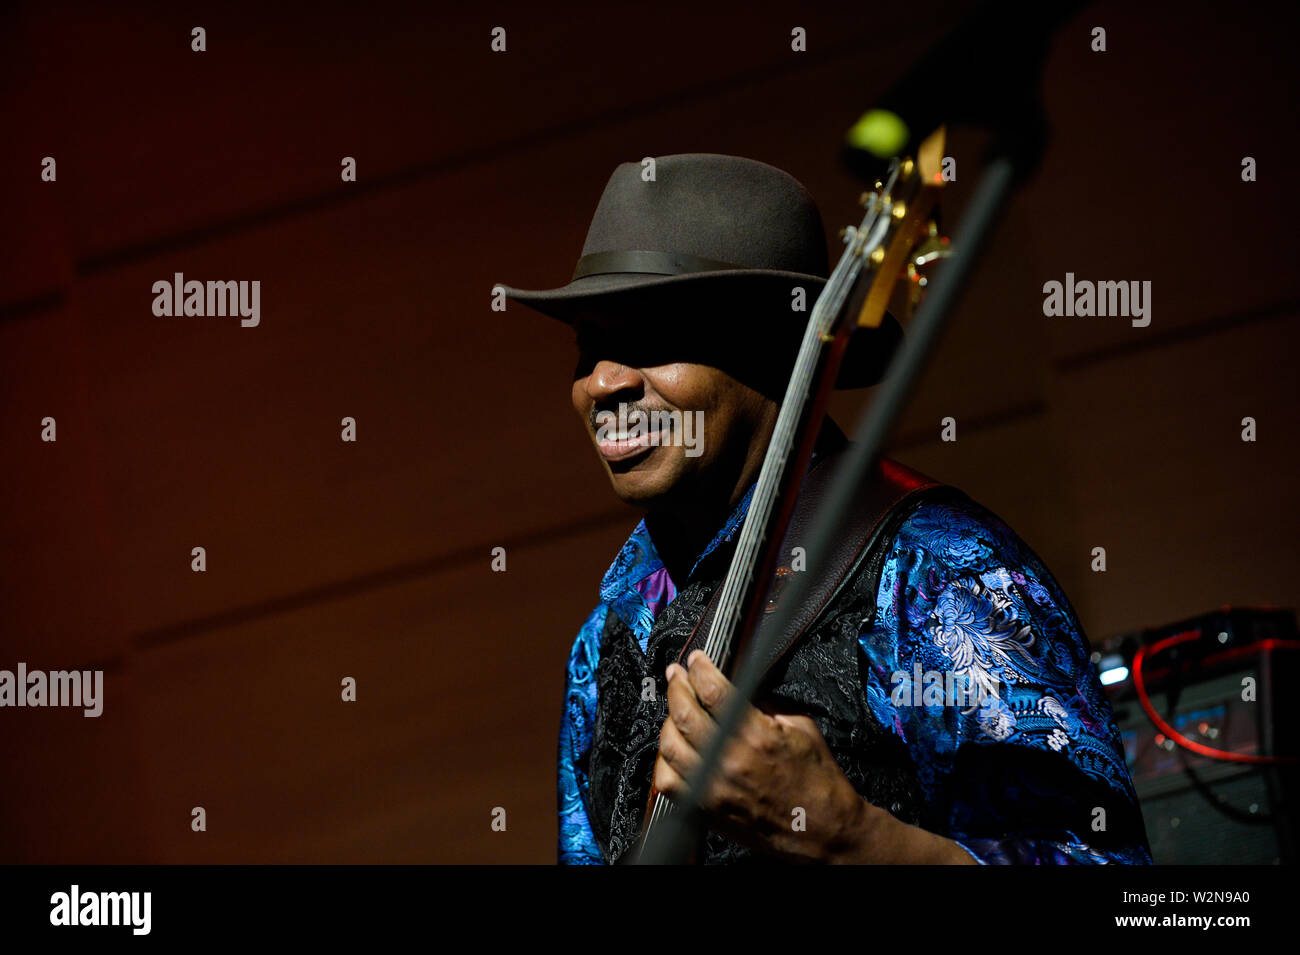 Bill Evans Stock Photos & Bill Evans Stock Images - Page 2 - Alamy